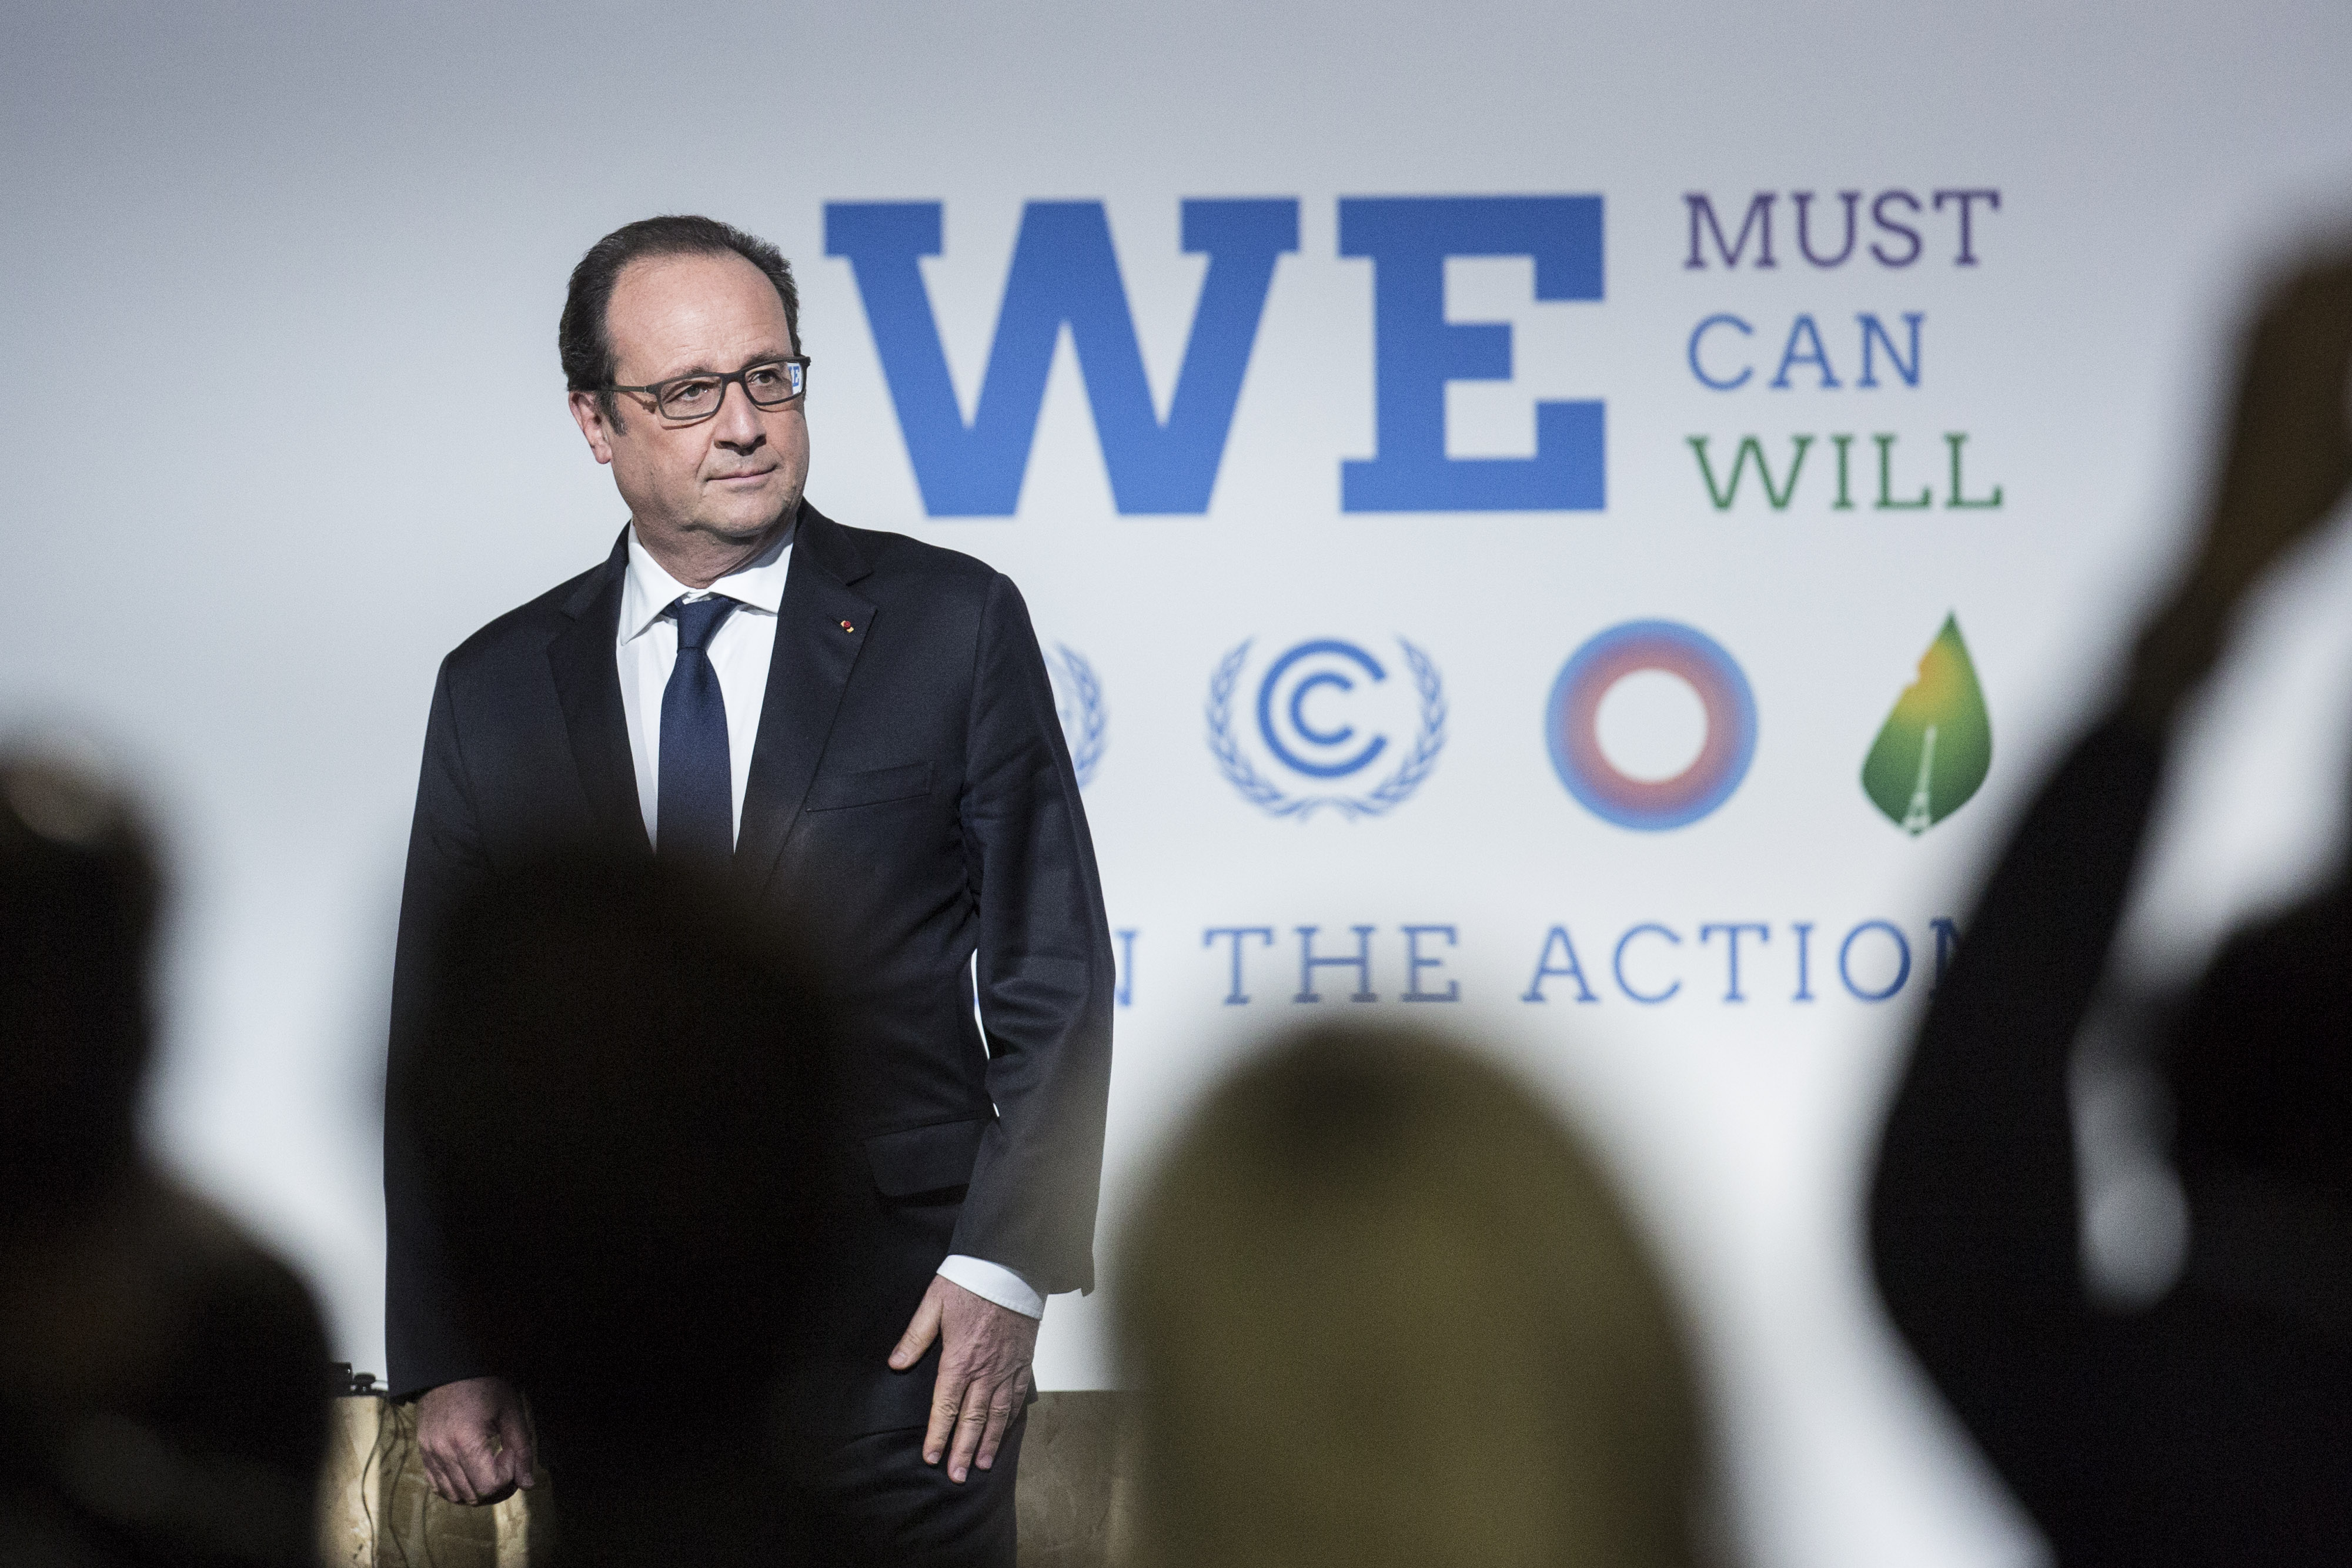 Francois Hollande during the action day at the United Nations COP21 climate summit, at Le Bourget, Paris on Dec. 5, 2015.